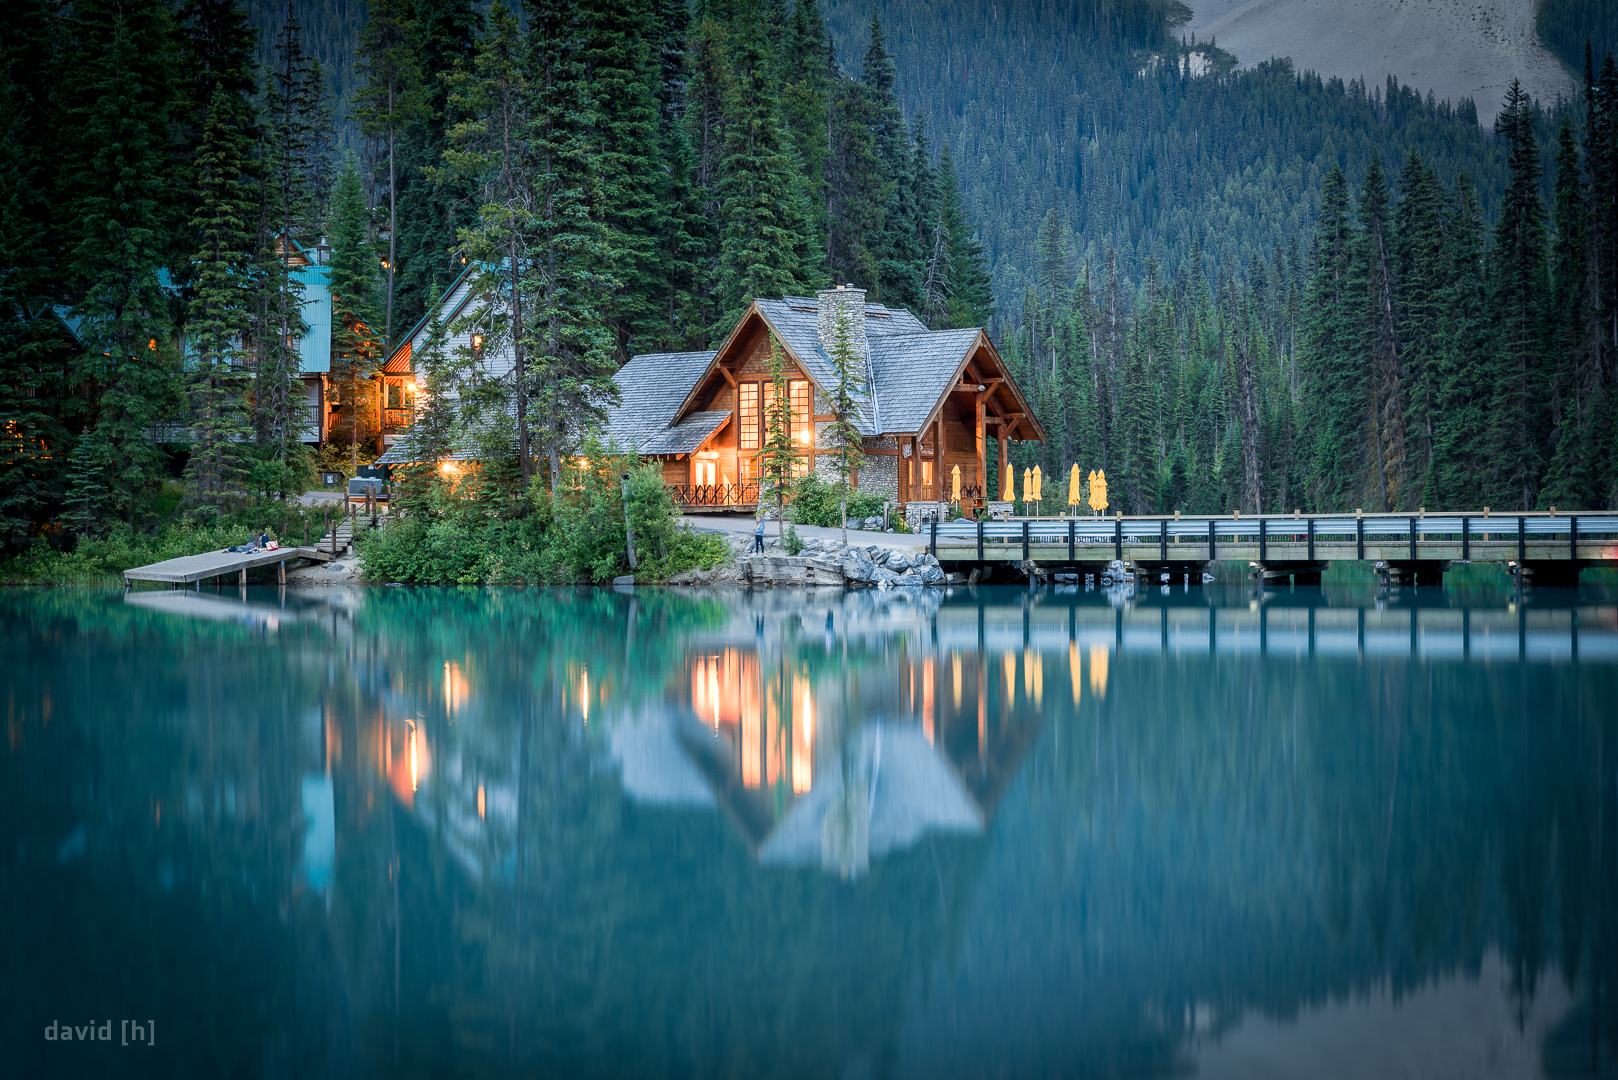 The Emerald Lake Lodge in Yoho National Park, British Columbia, Canada, just after sunset.